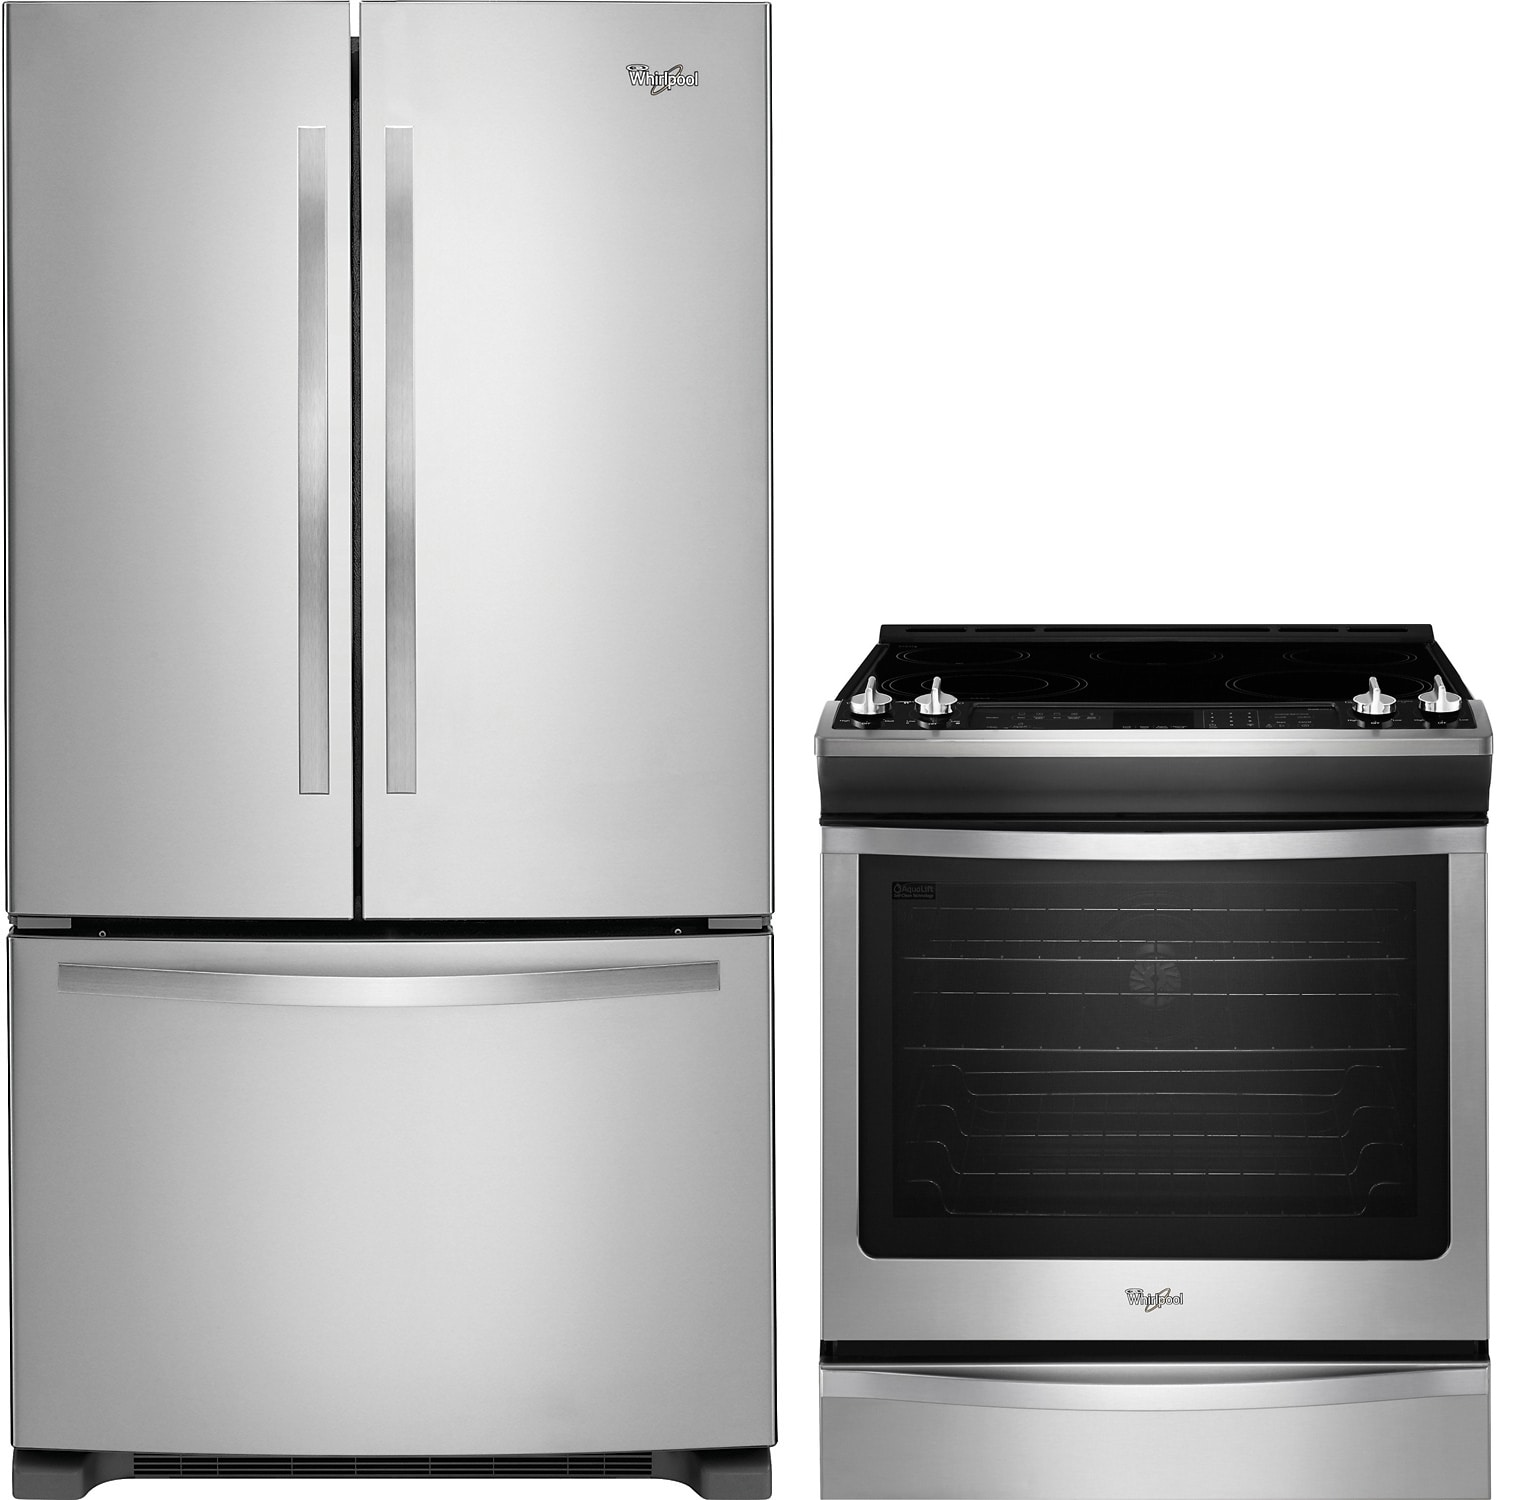 Whirlpool® 22 Cu. Ft. Fridge and 6.2 Cu. Ft. Electric Range Package – Stainless Steel